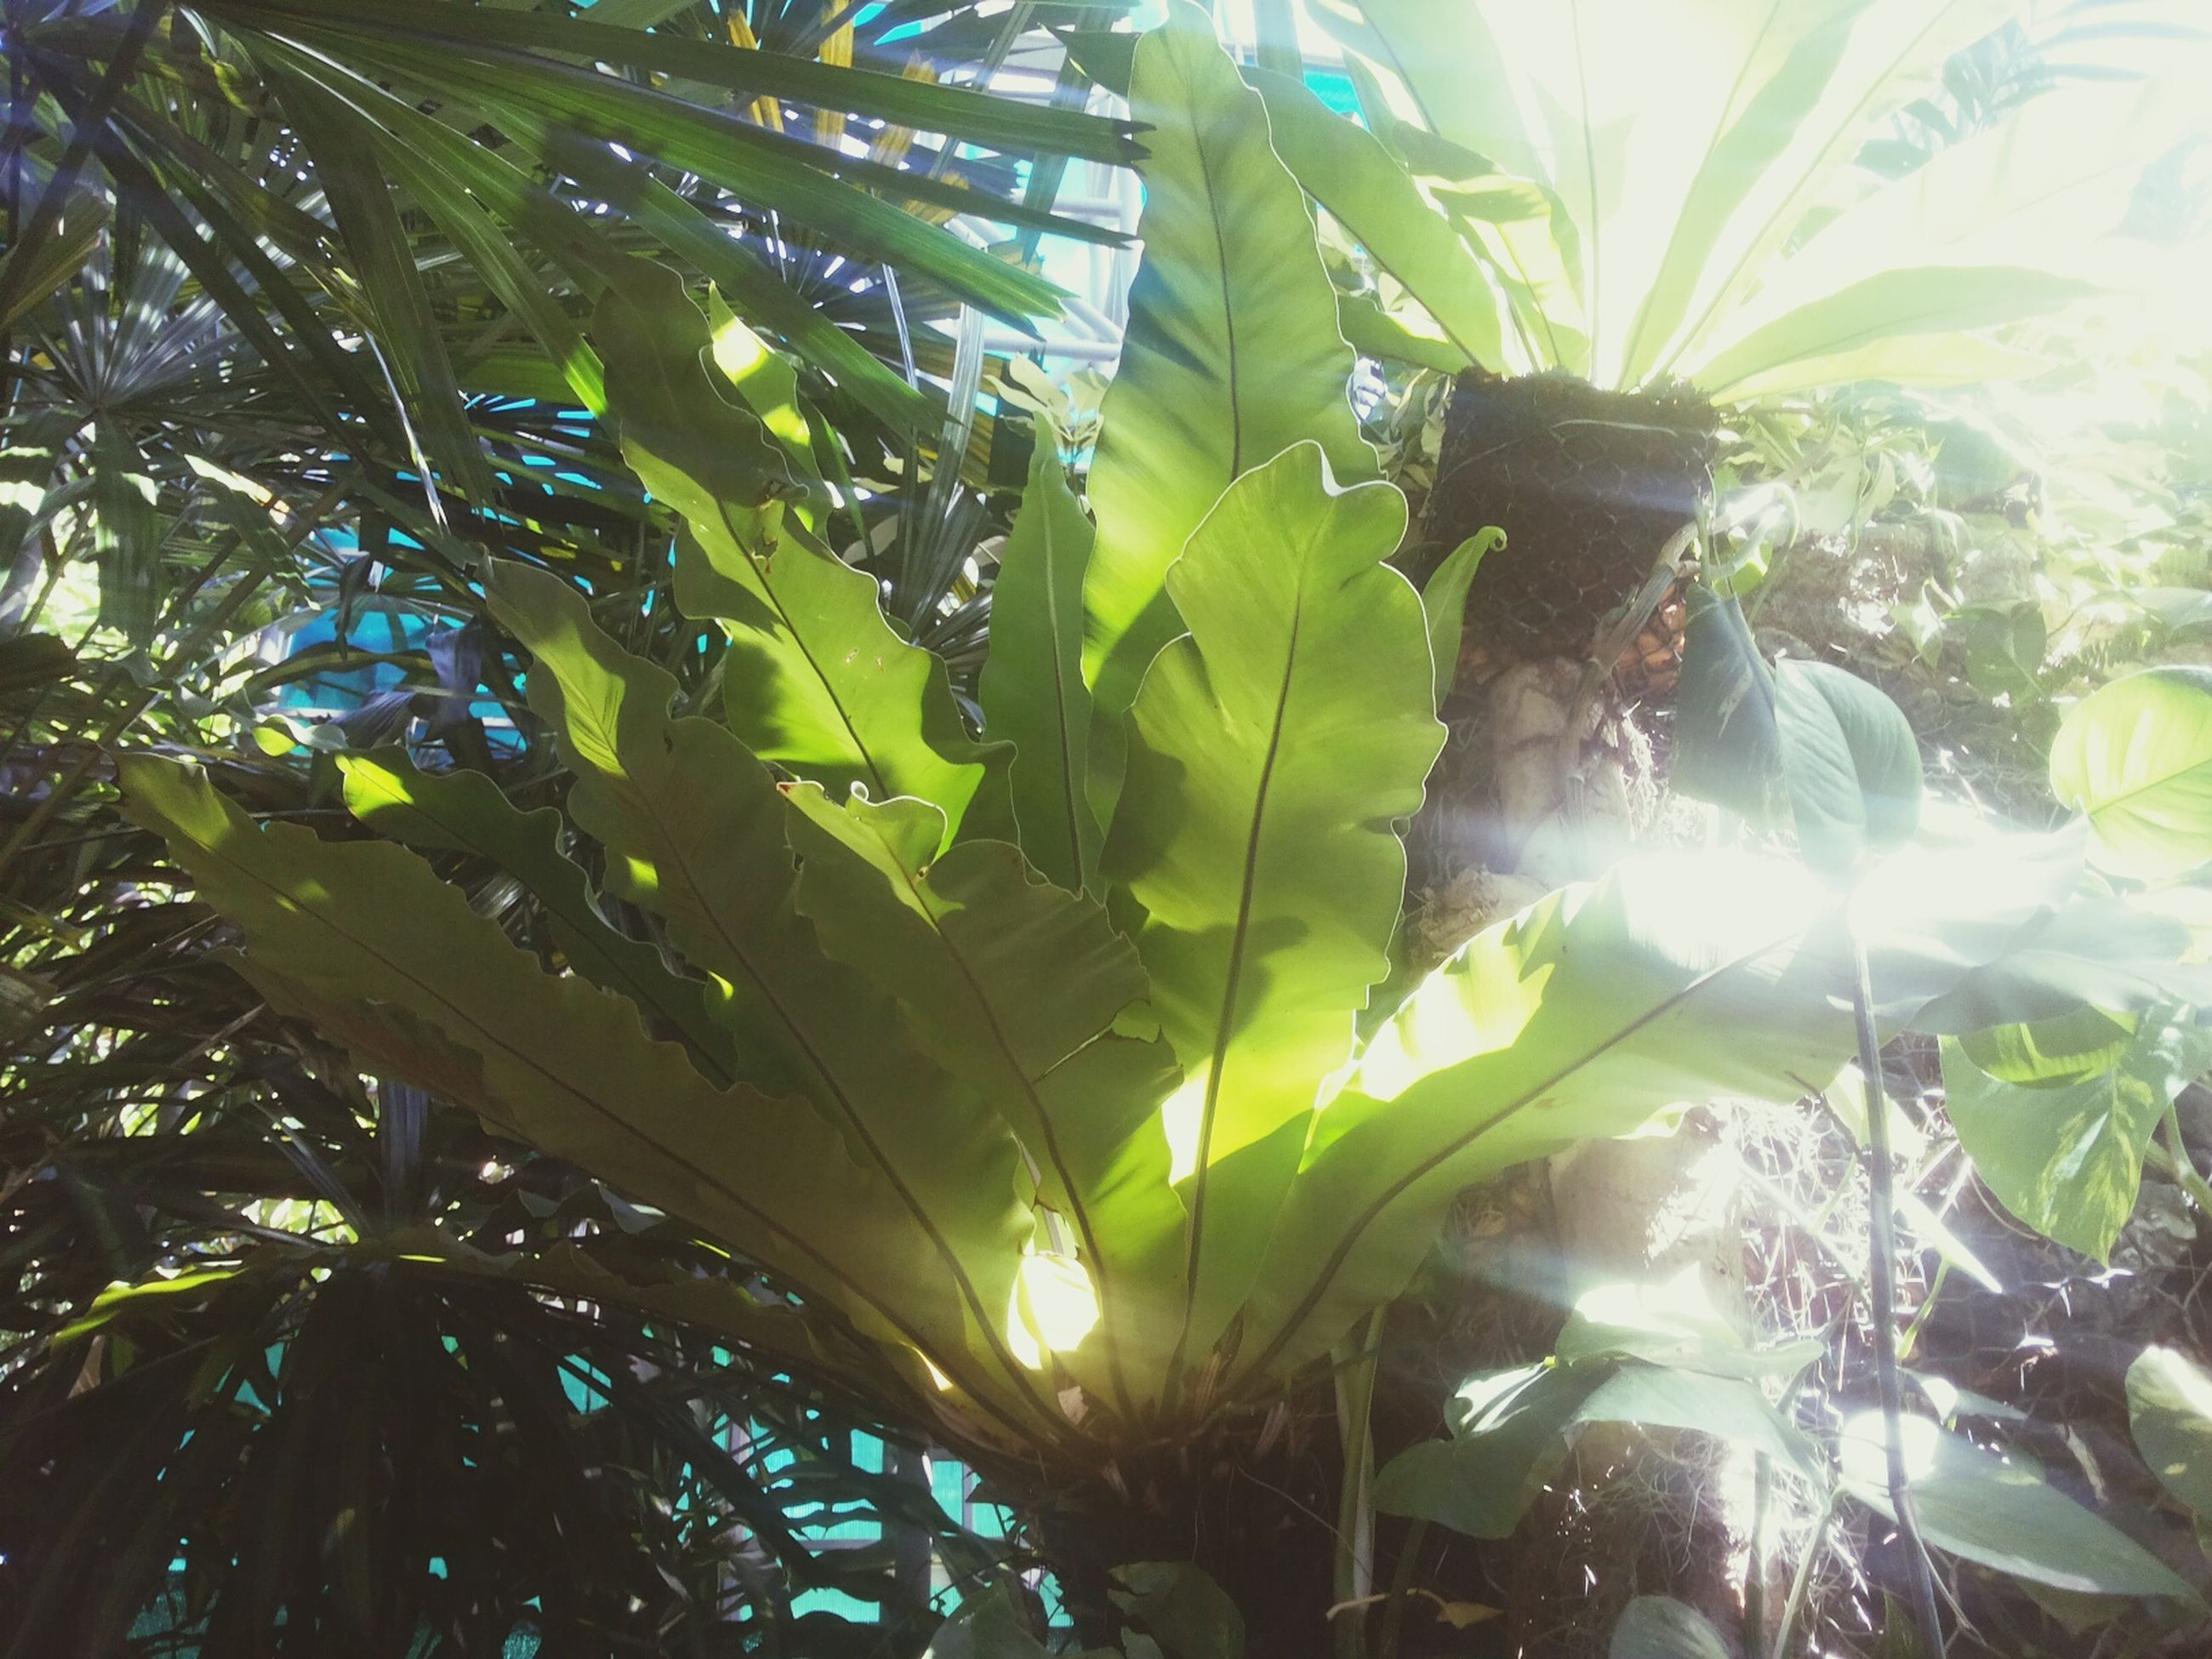 tree, low angle view, growth, leaf, sunlight, nature, branch, sunbeam, green color, sun, tranquility, beauty in nature, lens flare, full frame, day, backgrounds, close-up, plant, outdoors, no people